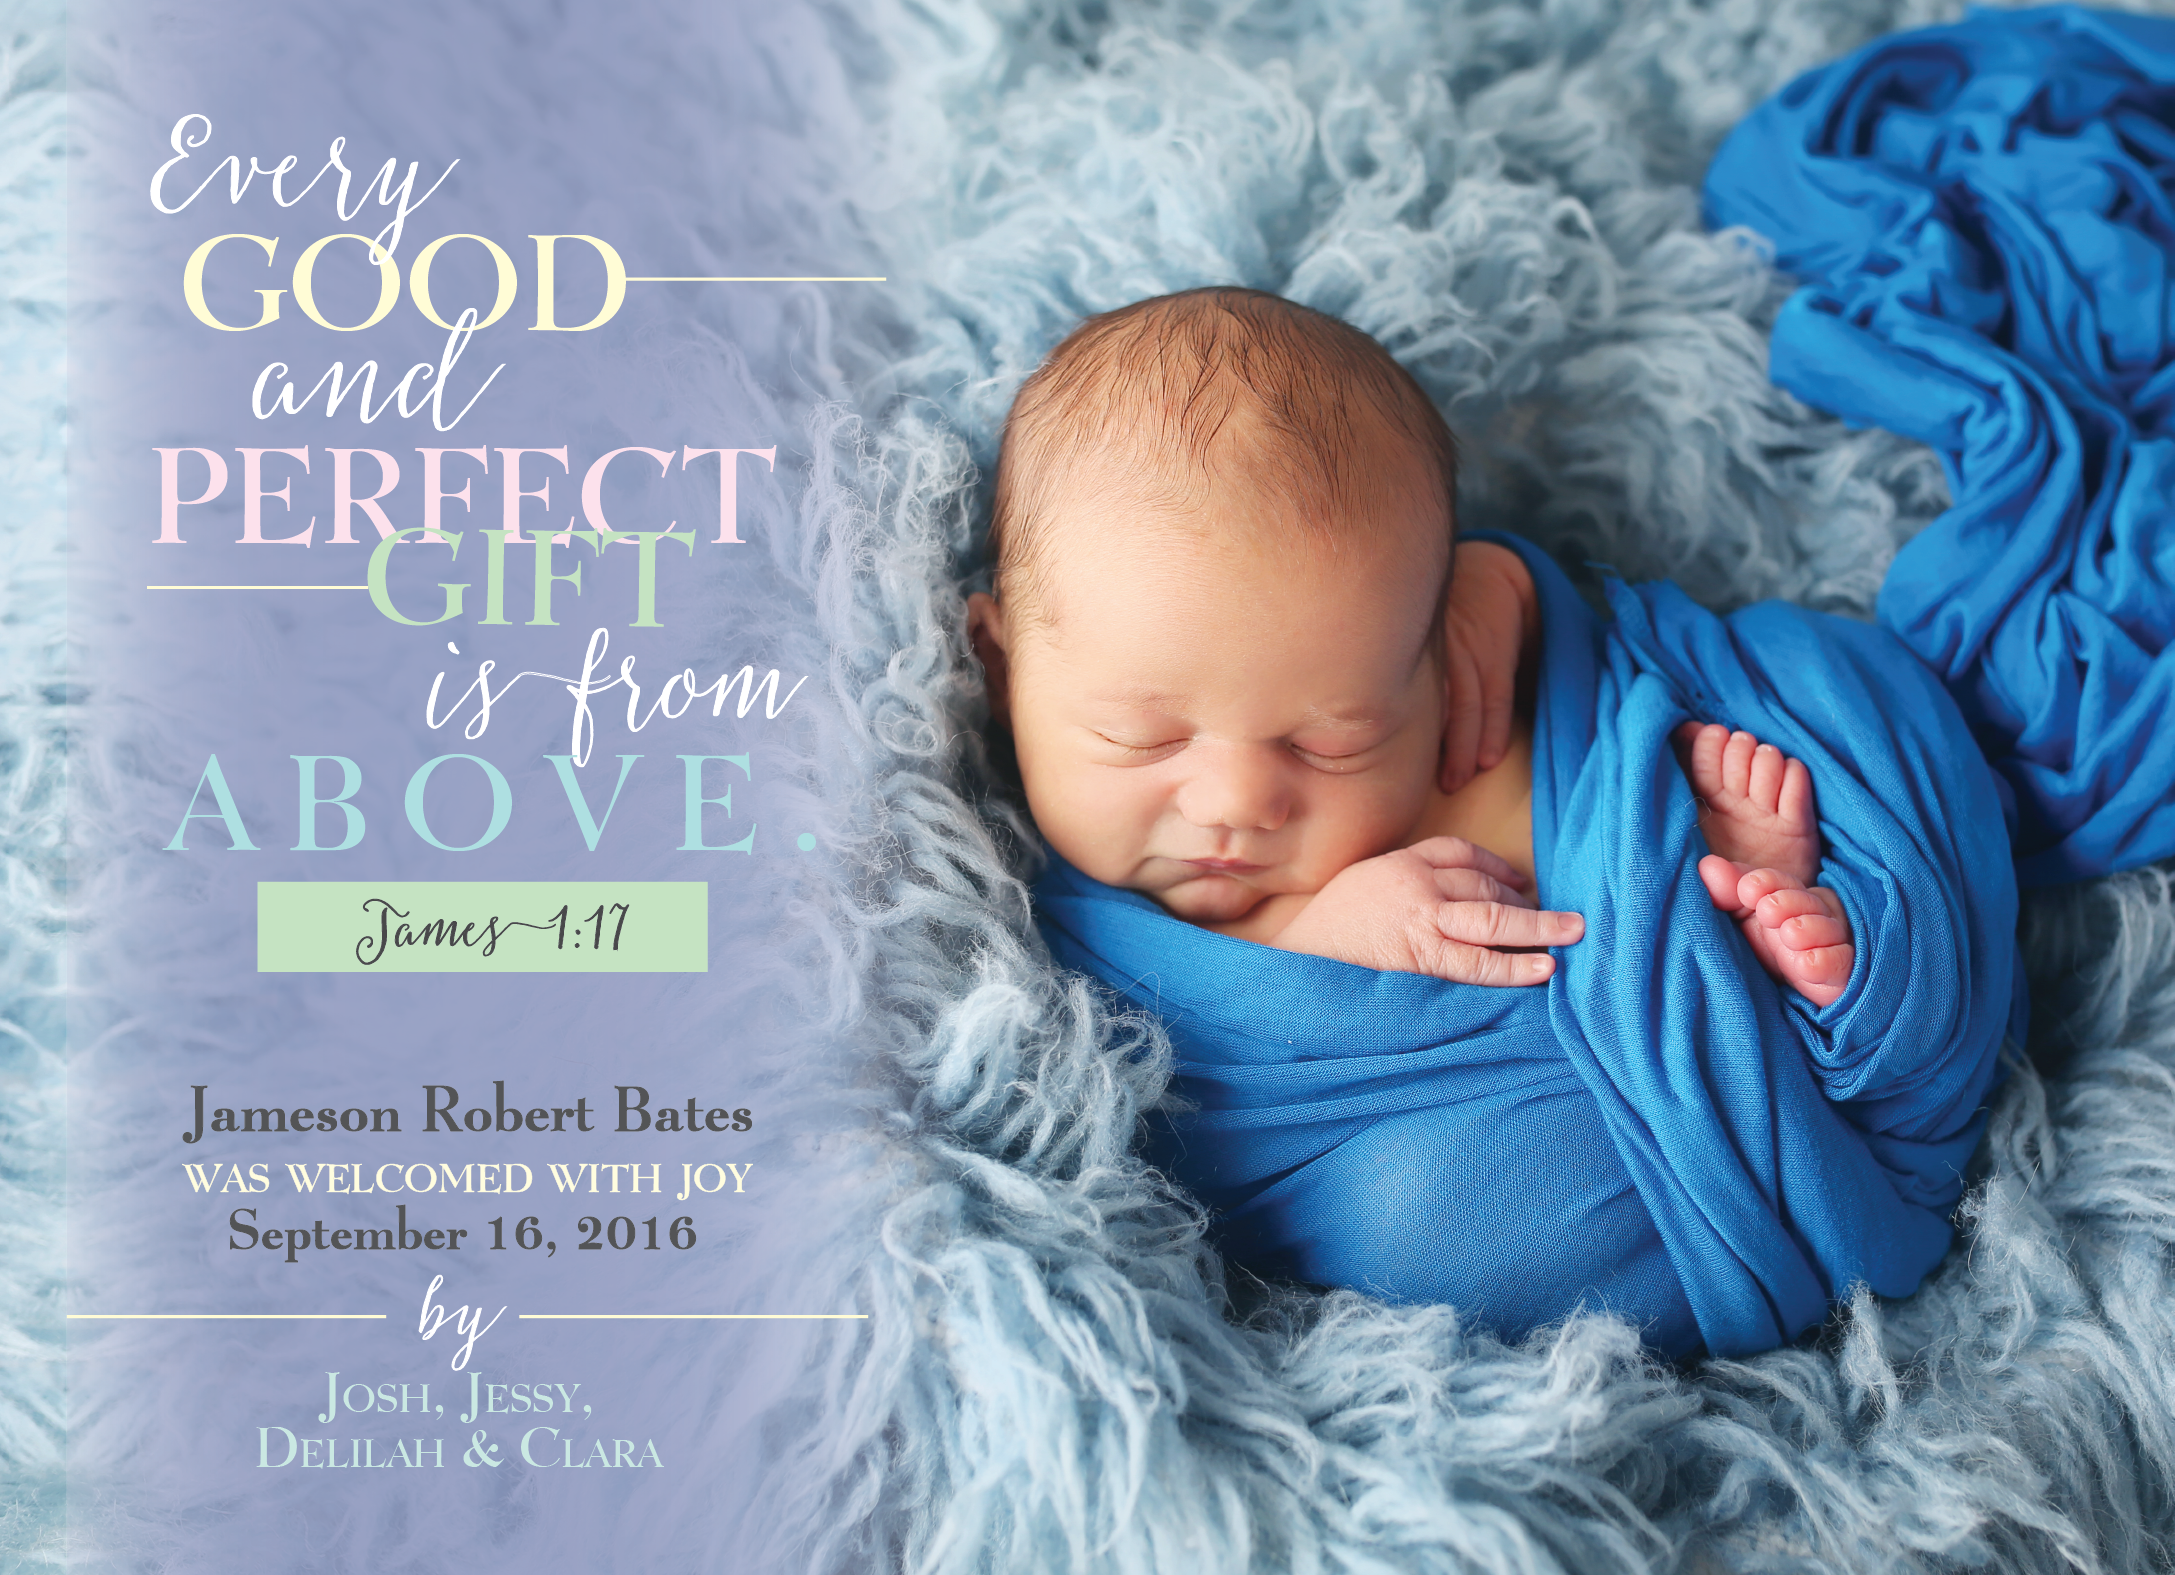 Every Good and Perfect Gift, Birth Announcement